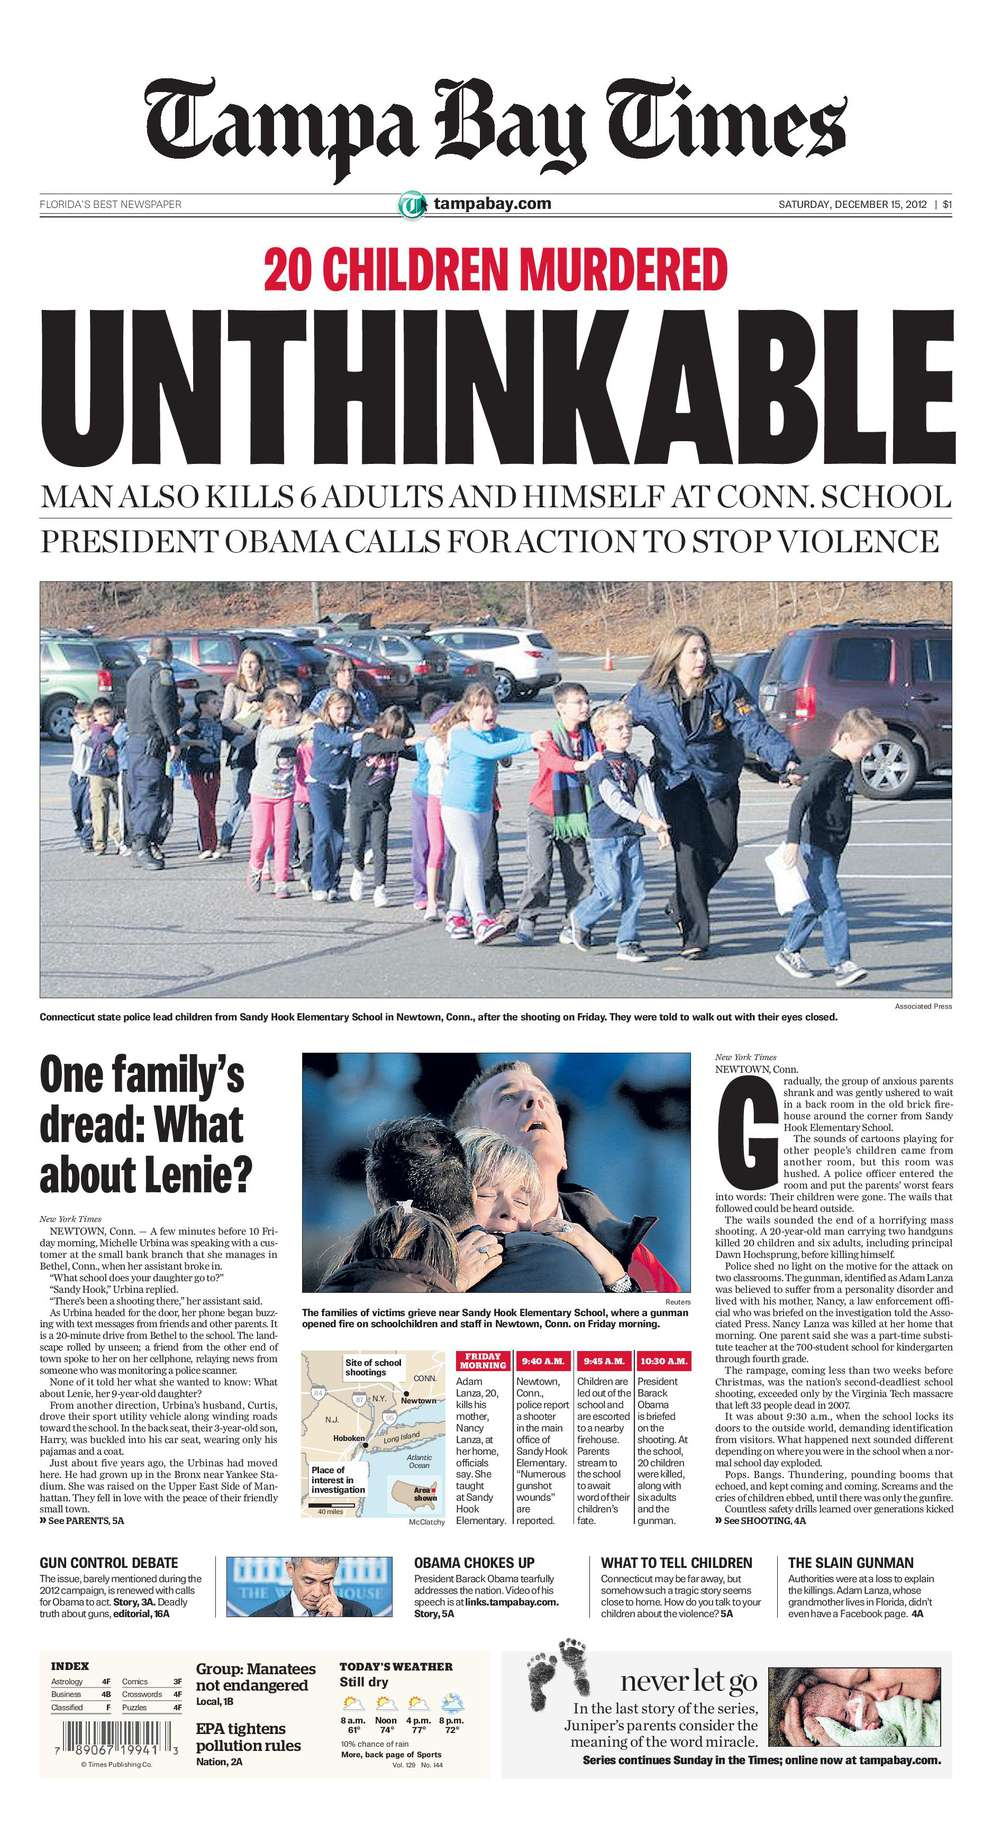 Dec. 14, 2012: 26 killed. The gunman killed his mother, then stormed Sandy Hook Elementary School armed with a semiautomatic rifle and two handguns. He killed 20 children, ages 6 and 7, and six adults at the Newton, Conn., school then committed suicide.